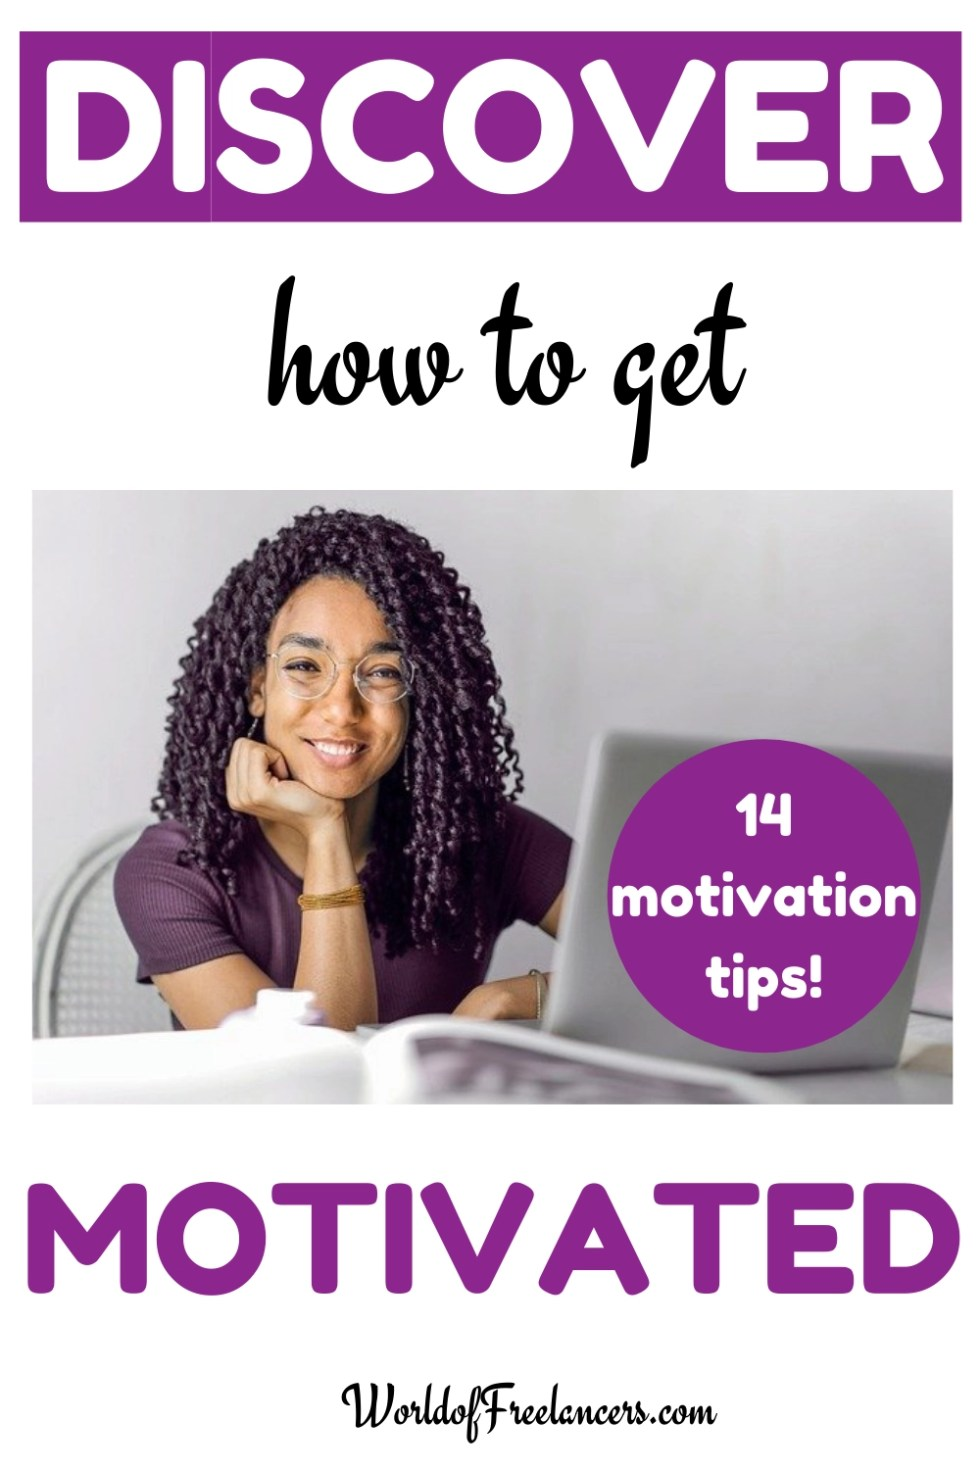 Discover how to get motivated - 14 motivation tips